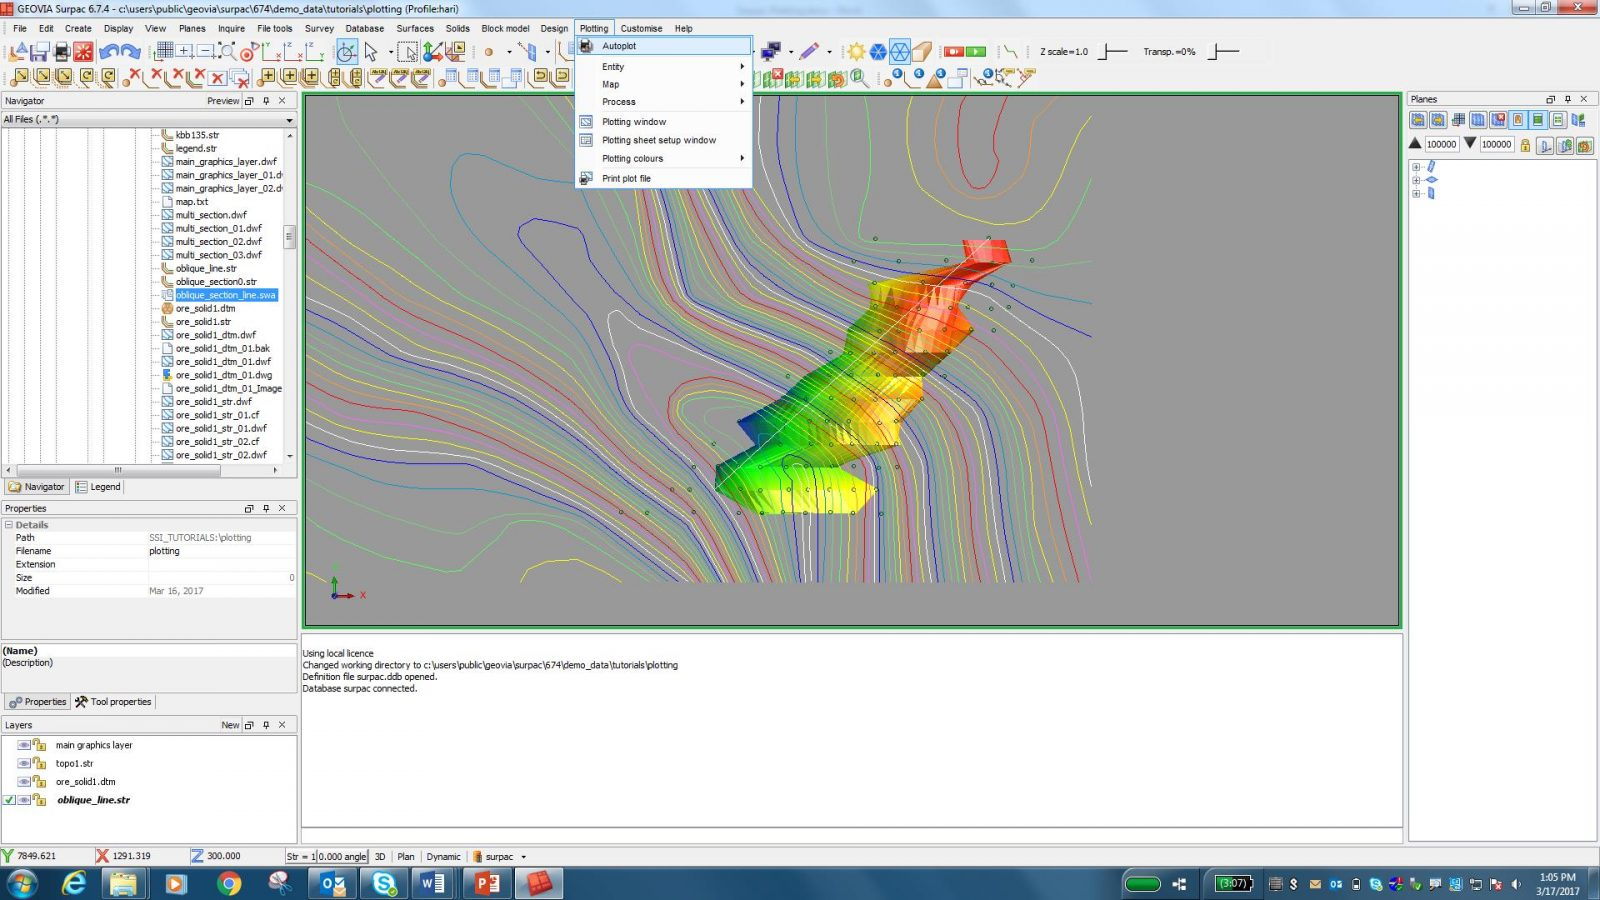 Improve Plotting in GEOVIA Surpac with DraftSight integration